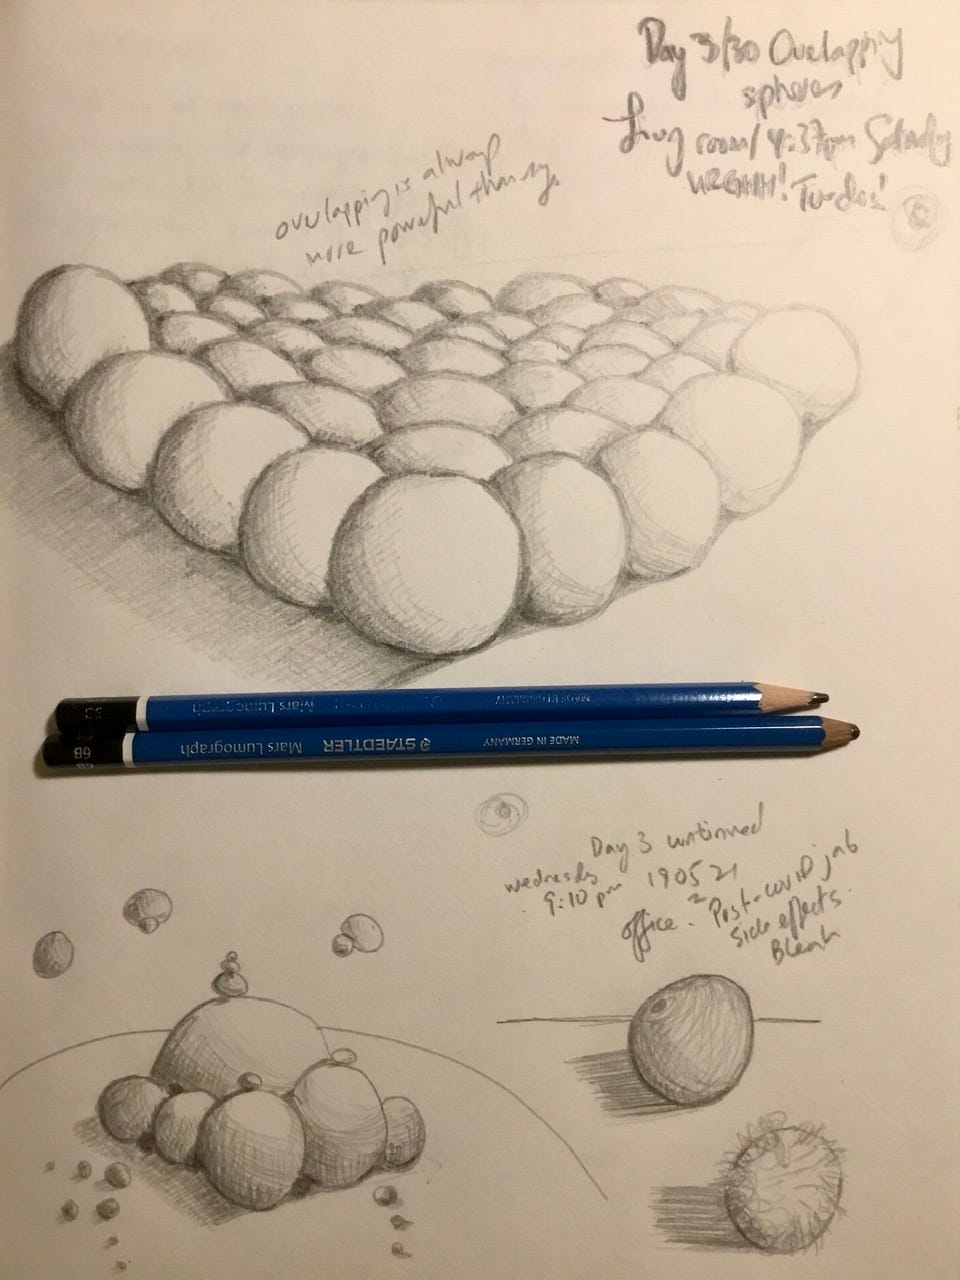 Pencil drawing of spheres with cross hatching